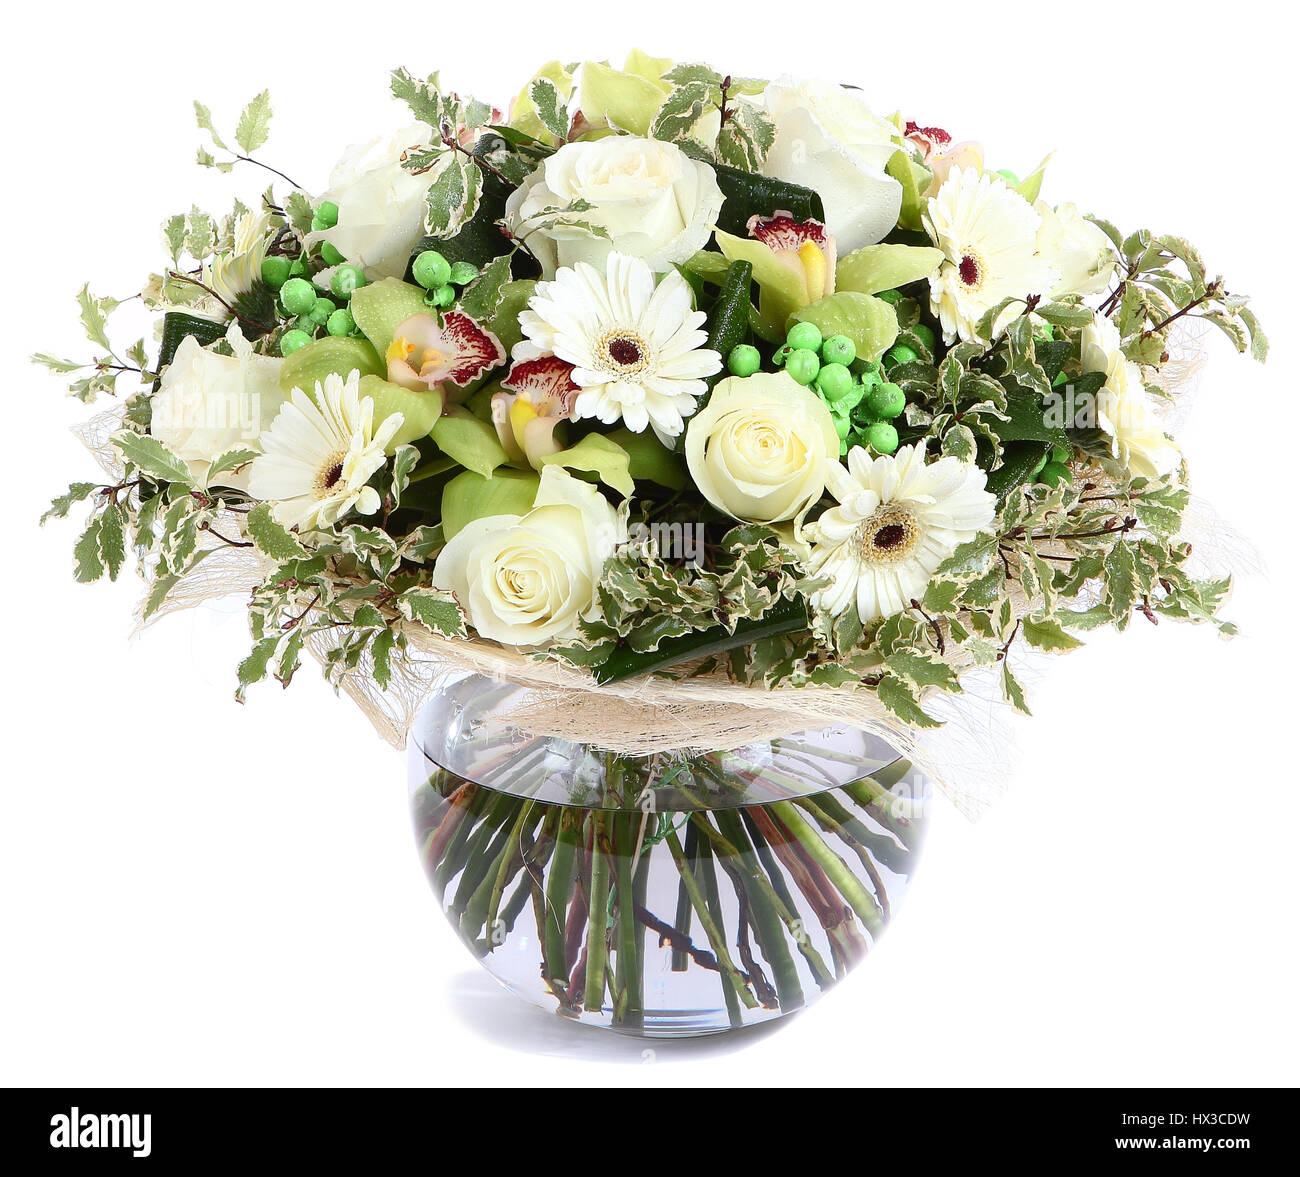 Flower arrangement in glass transparent vase white roses flower arrangement in glass transparent vase white roses orchids white gerbera daisies green peas isolated on white background floristic compos reviewsmspy